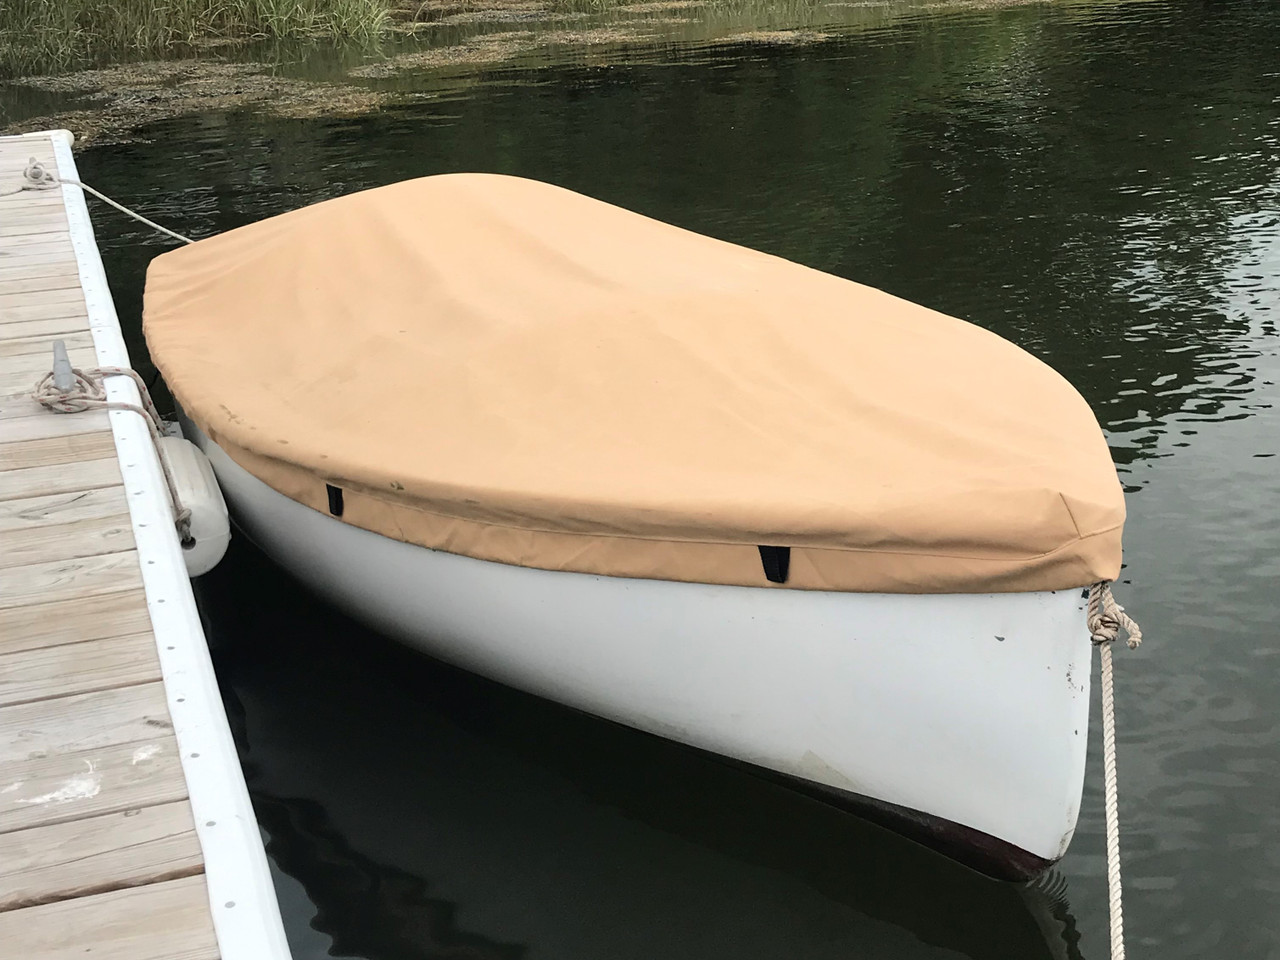 Keep your Dyer Dink dinghy free of leaves and dirt with a quality Top Deck Cover - made in San Luis Obispo California USA by SLO Sail and Canvas.